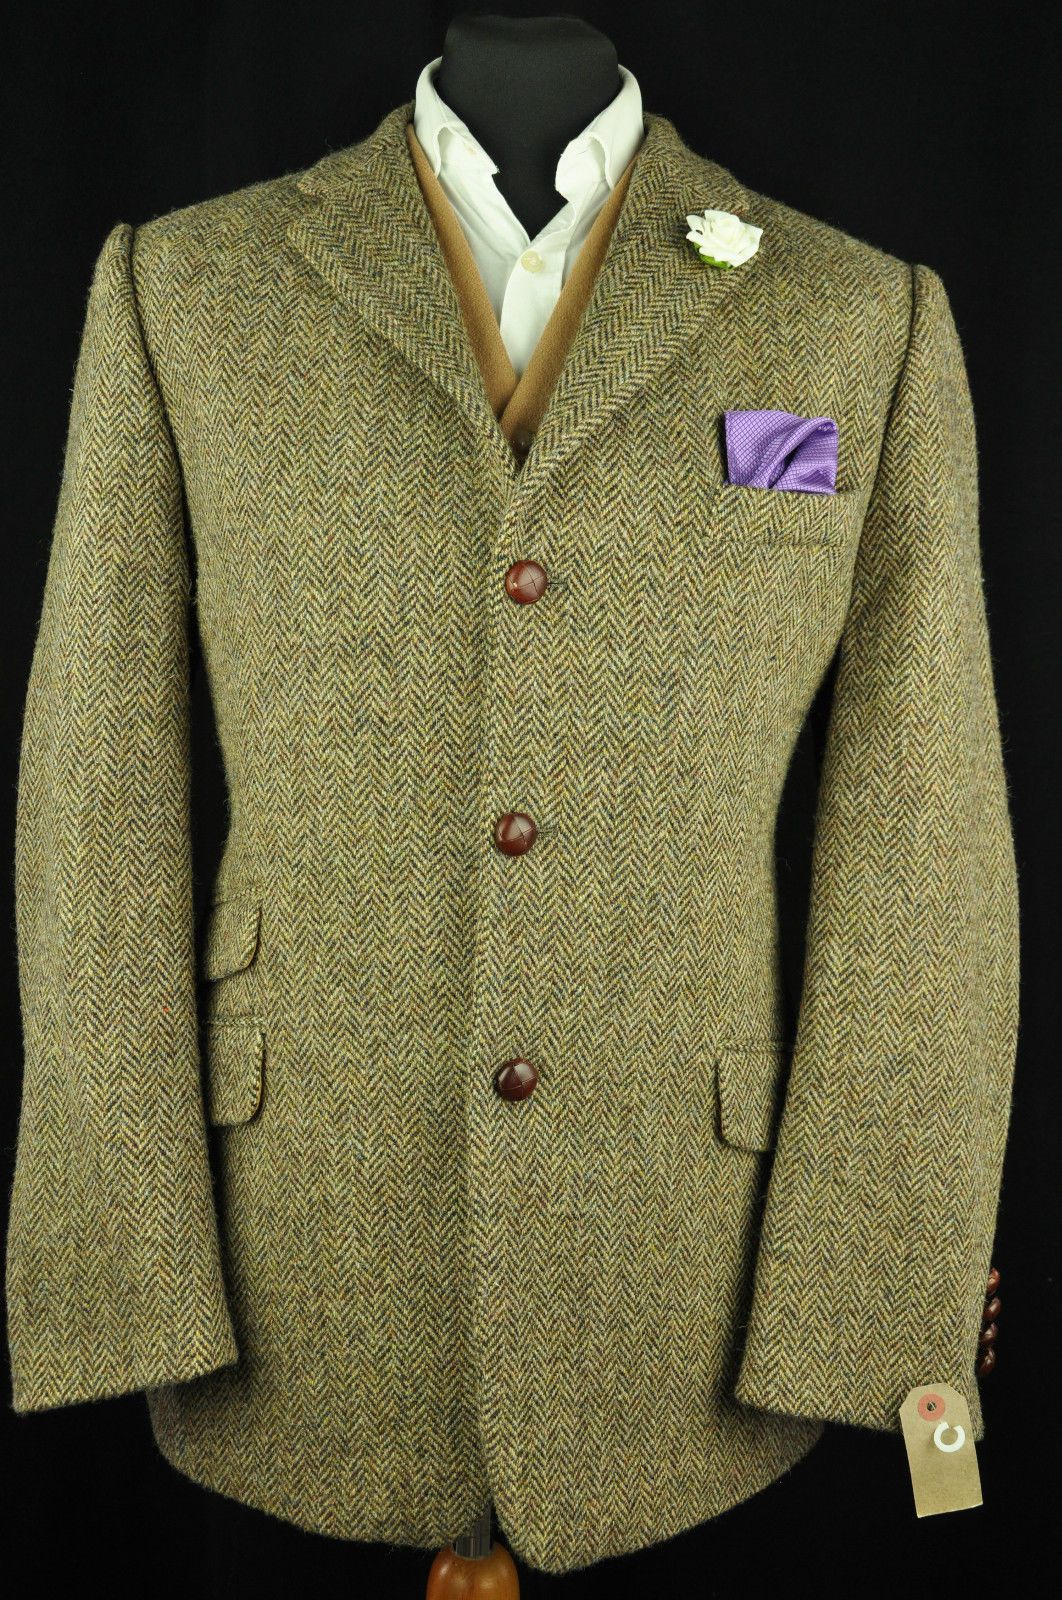 Vtg Harris Tweed Herringbone Country Tailored Hacking Jacket 44 527 Pristine Tweed Jacket Men Hacking Jacket Tweed Fashion